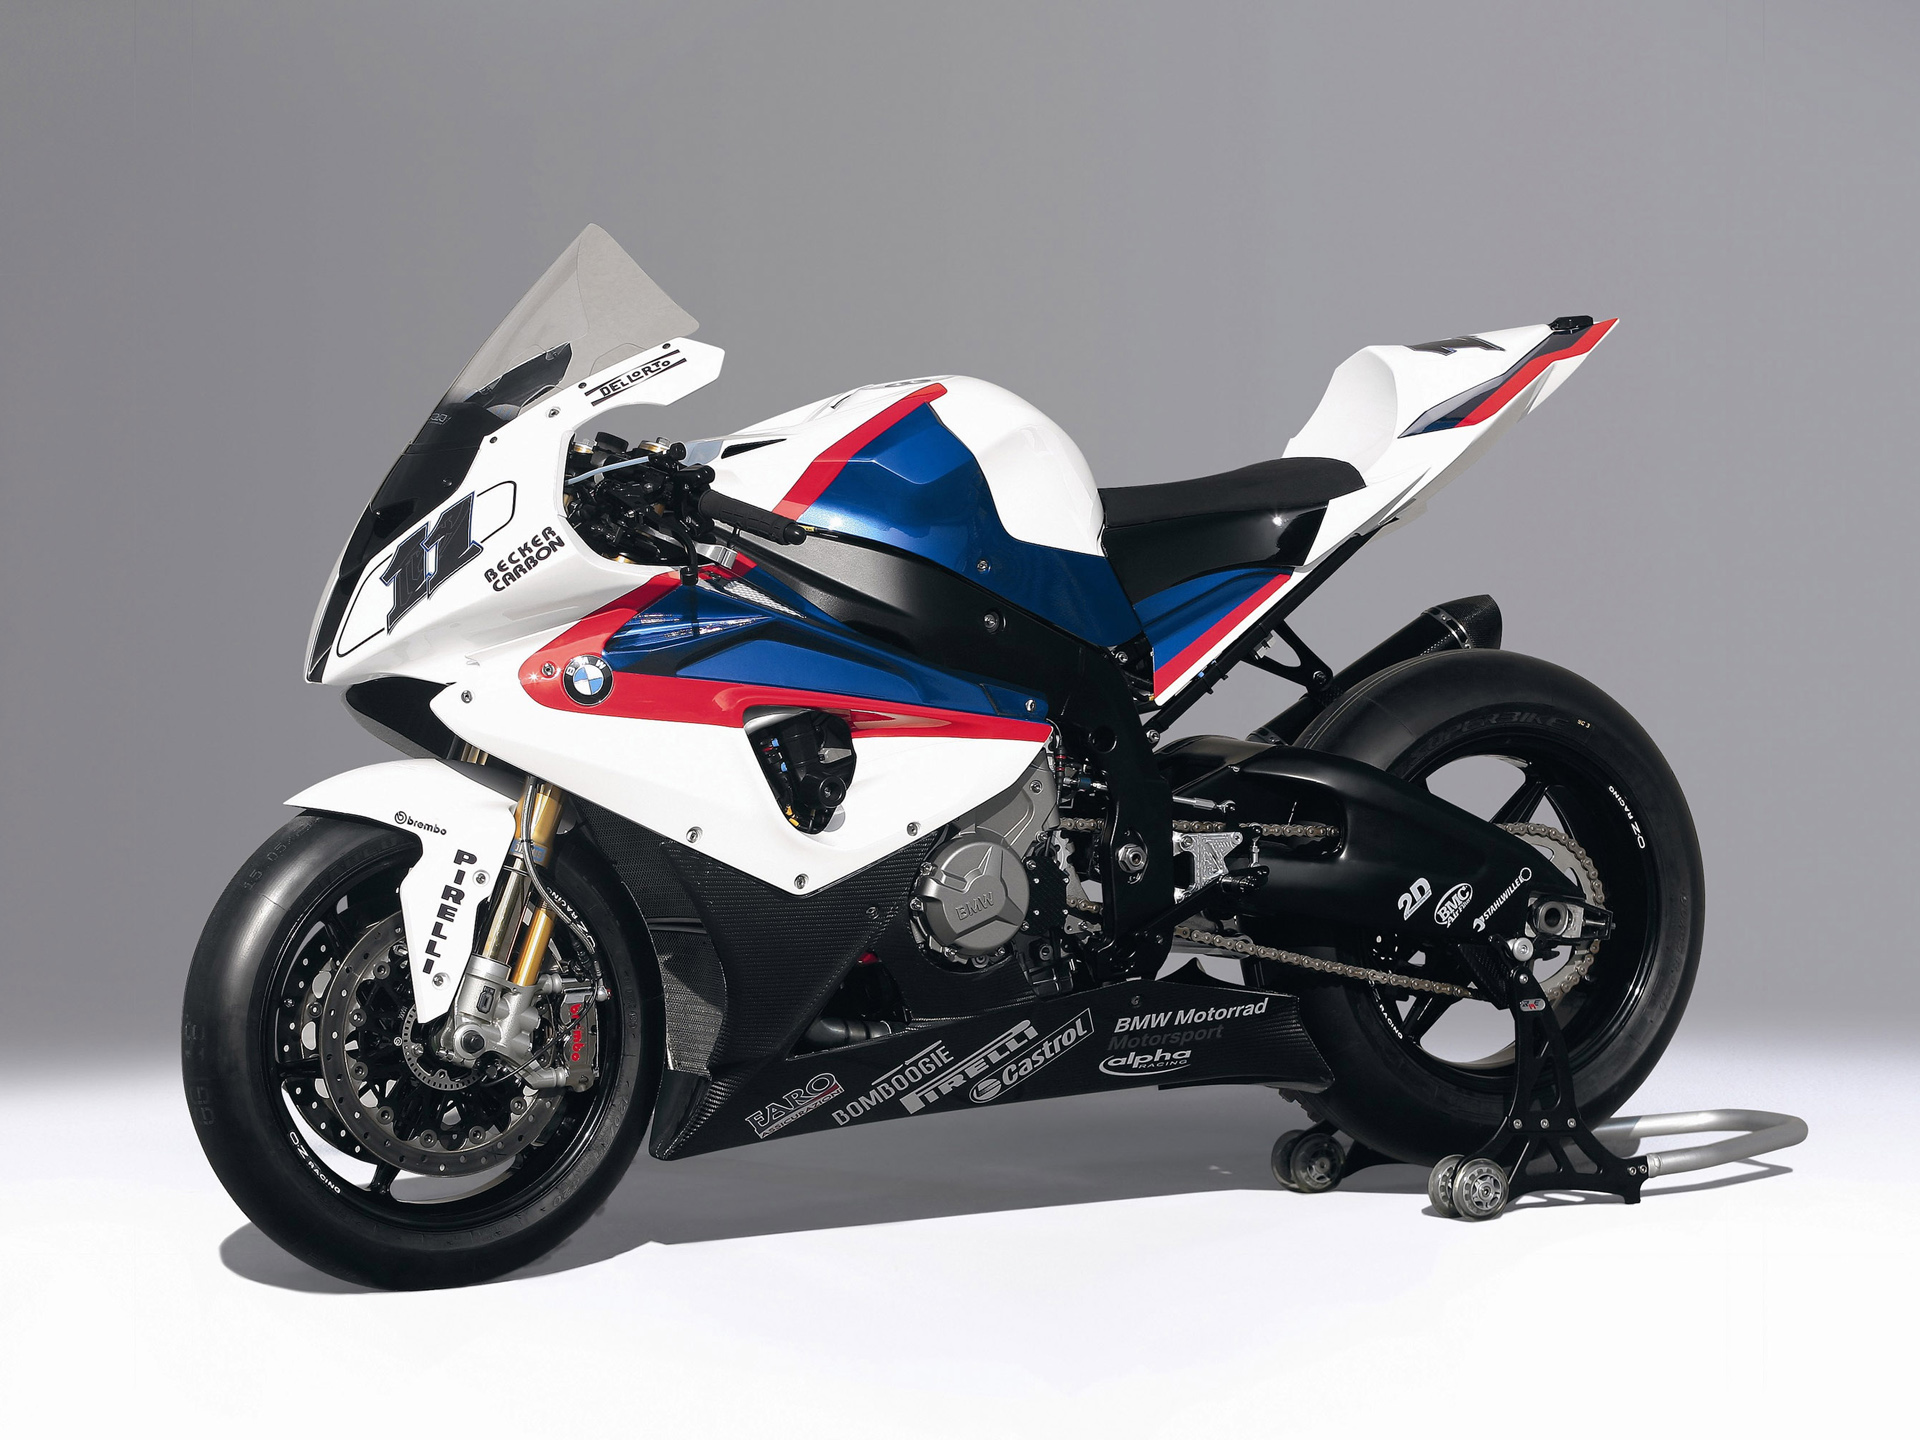 BMW S1000RR SBK picture # 70943 | BMW photo gallery | CarsBase.com